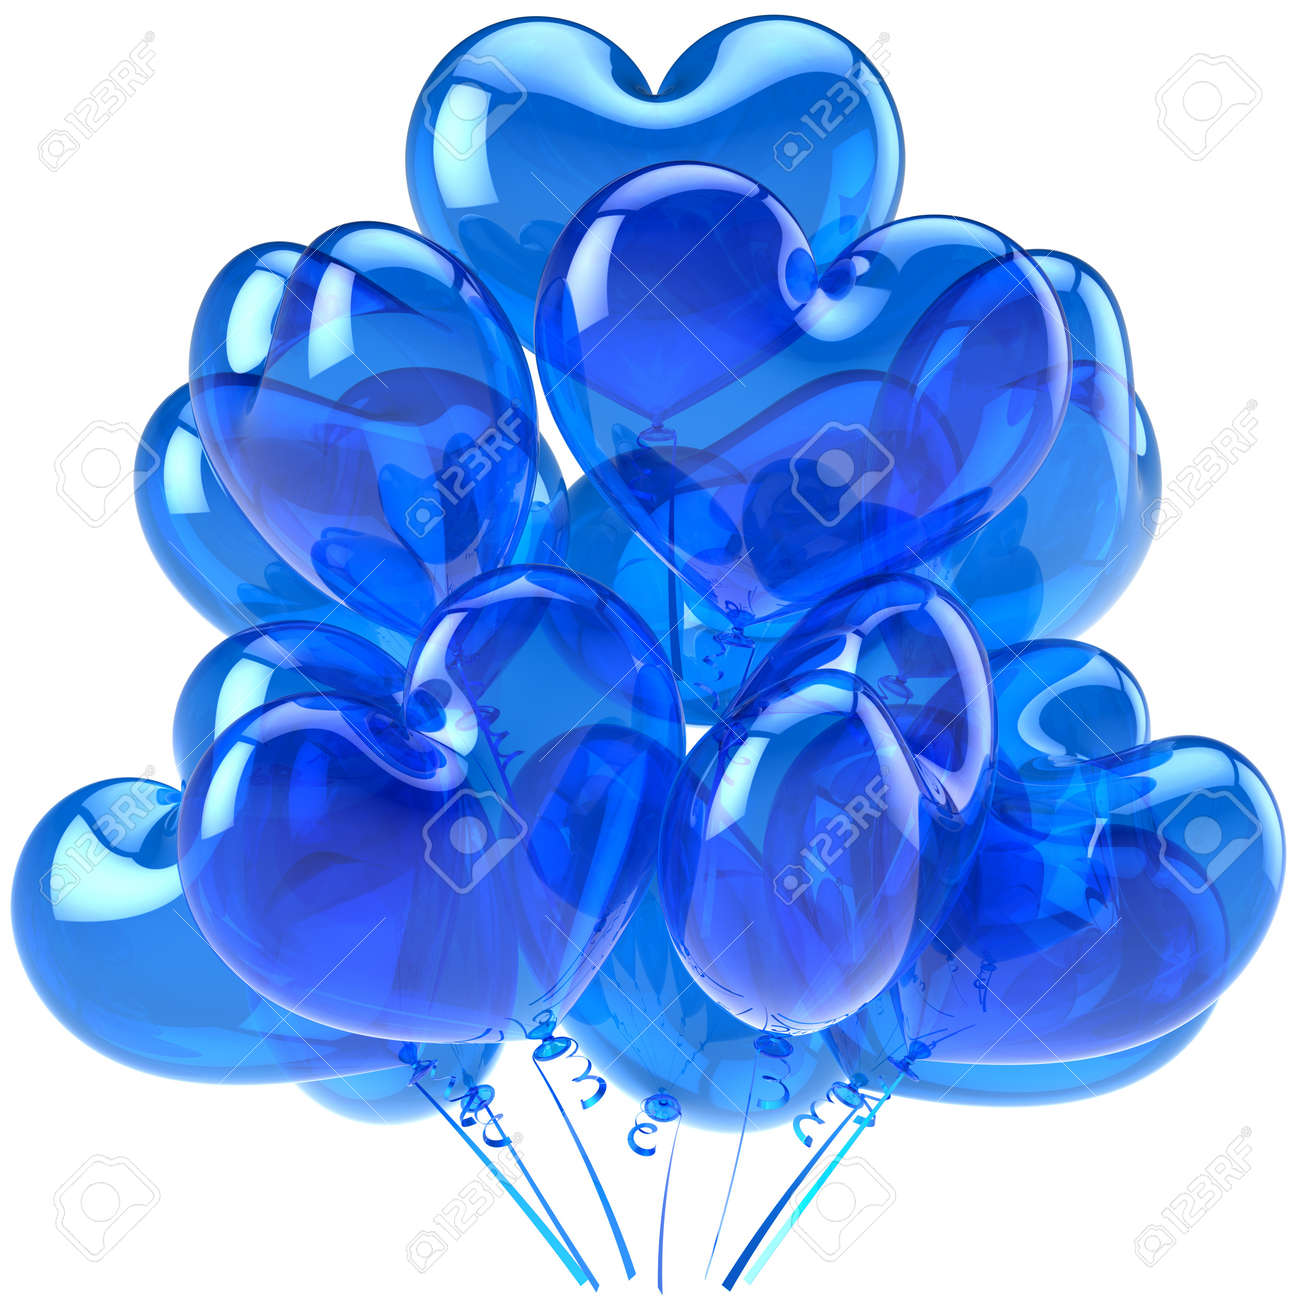 Birthday Balloons Blue Translucent Heart Shaped Decoration For Party Celebration Romantic Love Card Abstract